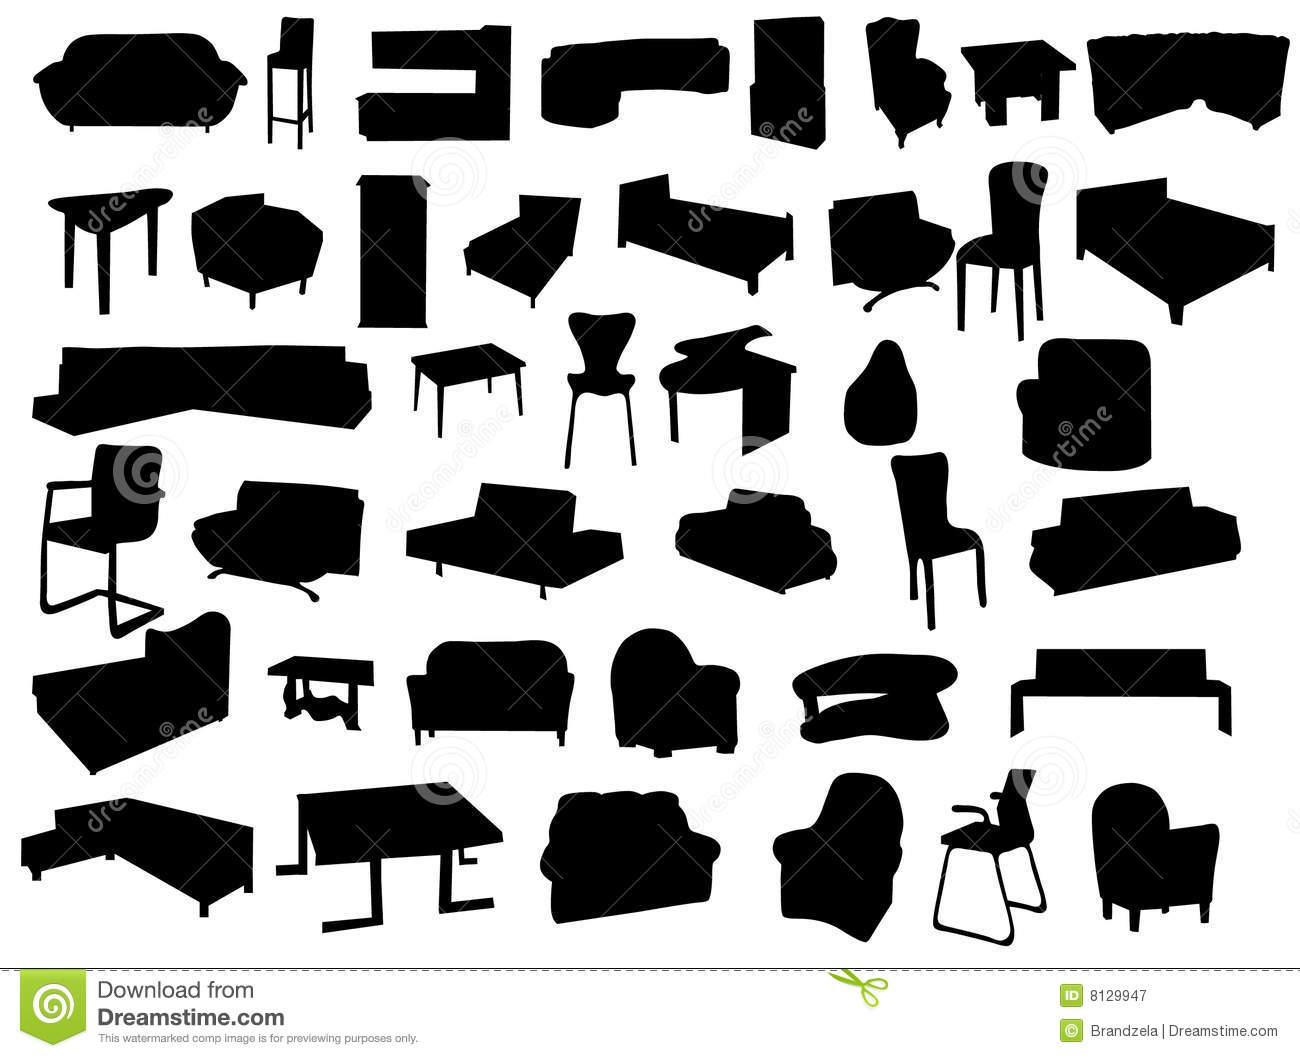 Antique chair silhouette - Antique Chair And Table Vector Silhouettes Of Forniture Royalty Free Stock Photography